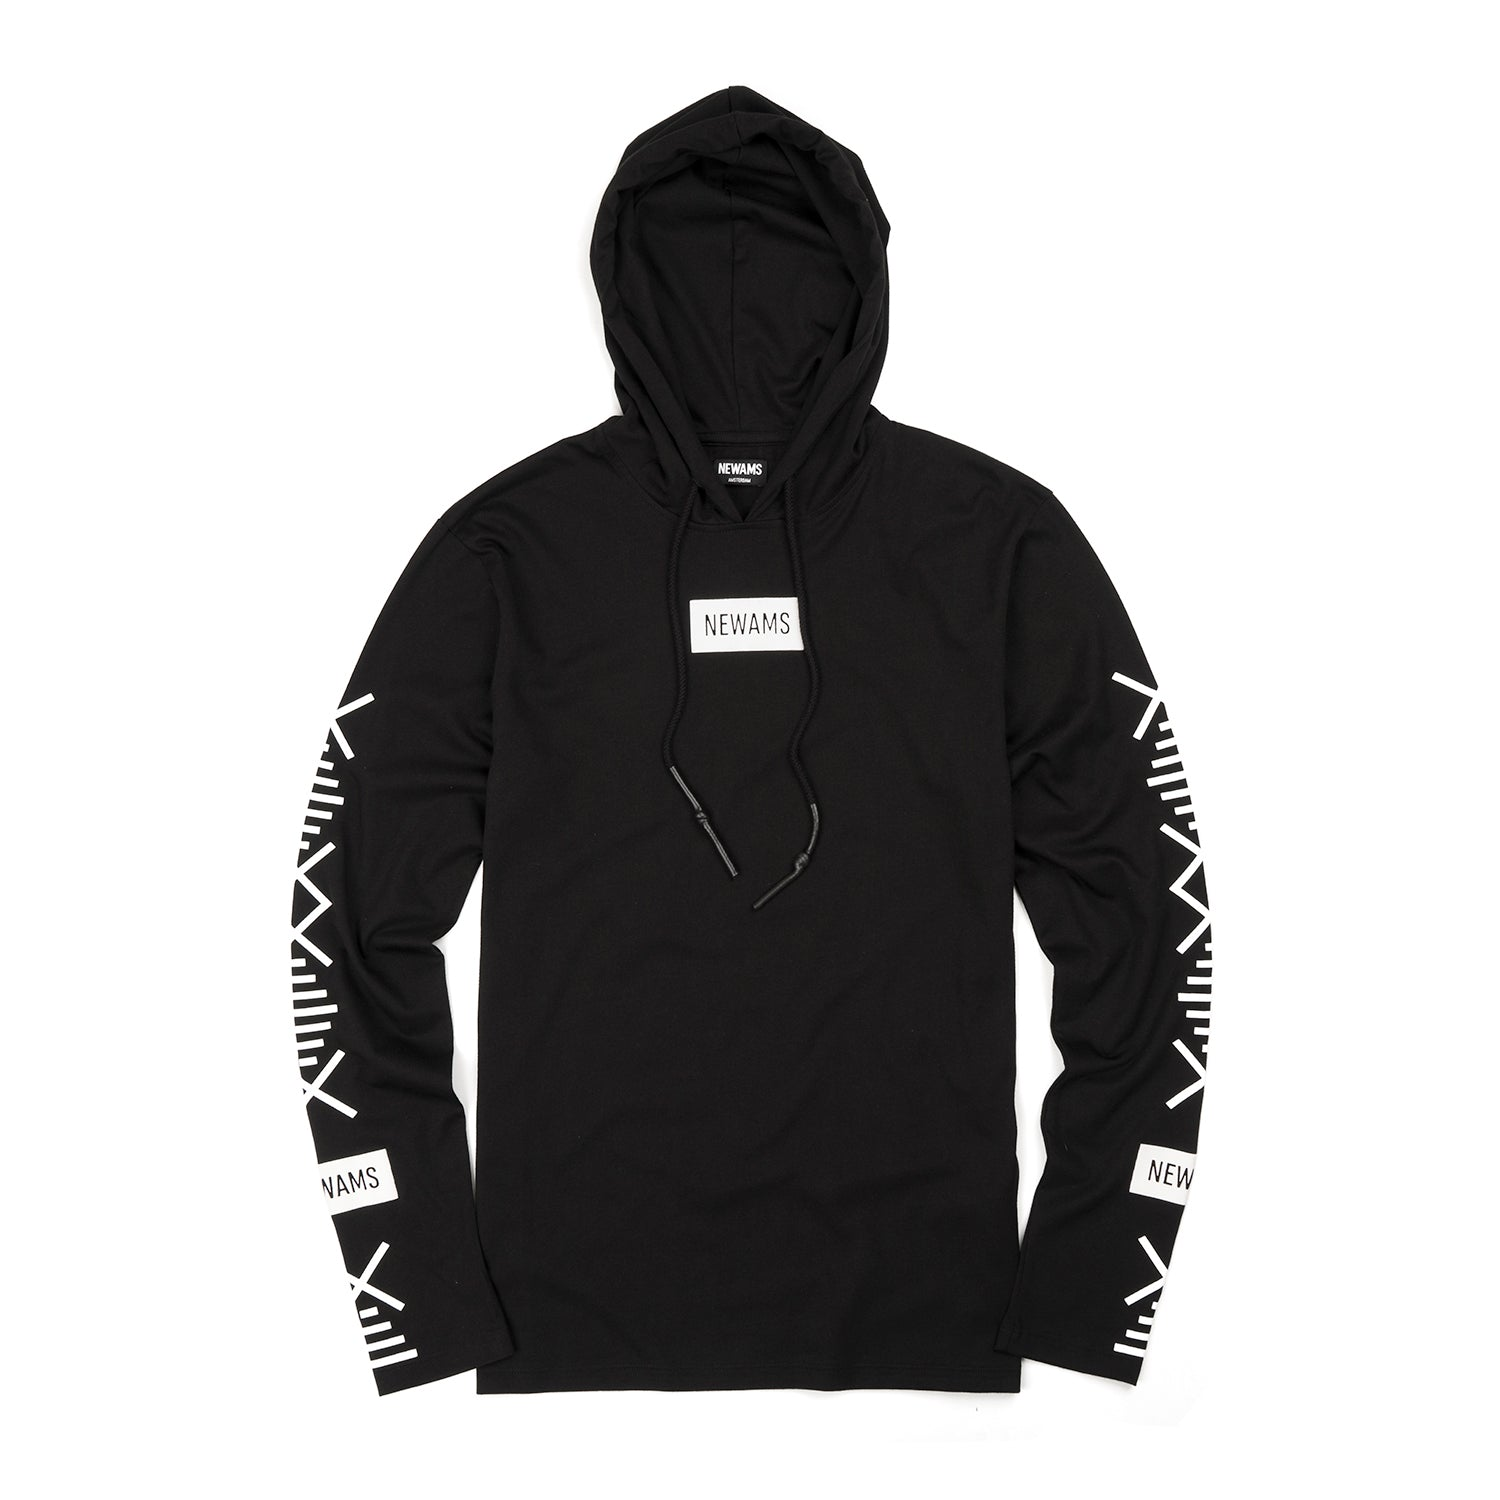 NEWAMS Hooded Long Sleeve Black